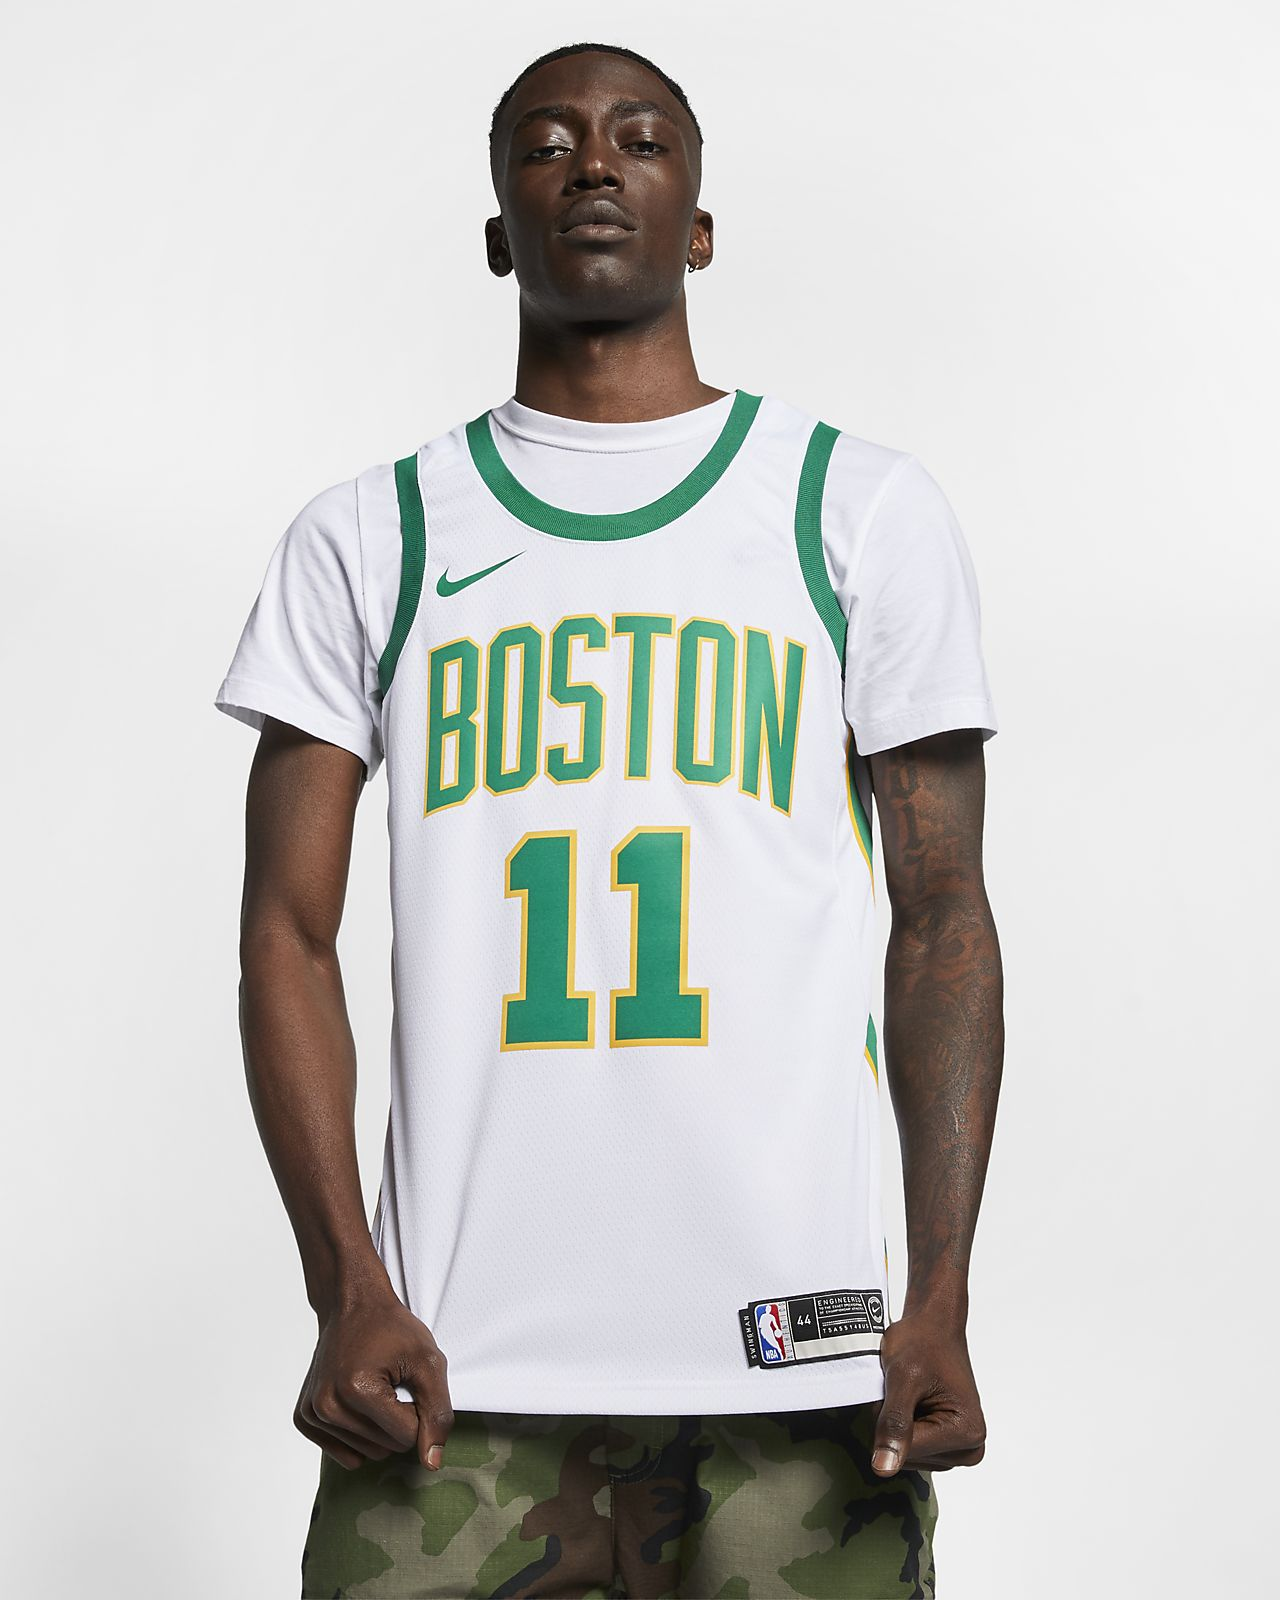 e5a5676d61a Men s Nike NBA Connected Jersey. Kyrie Irving City Edition Swingman (Boston  Celtics)